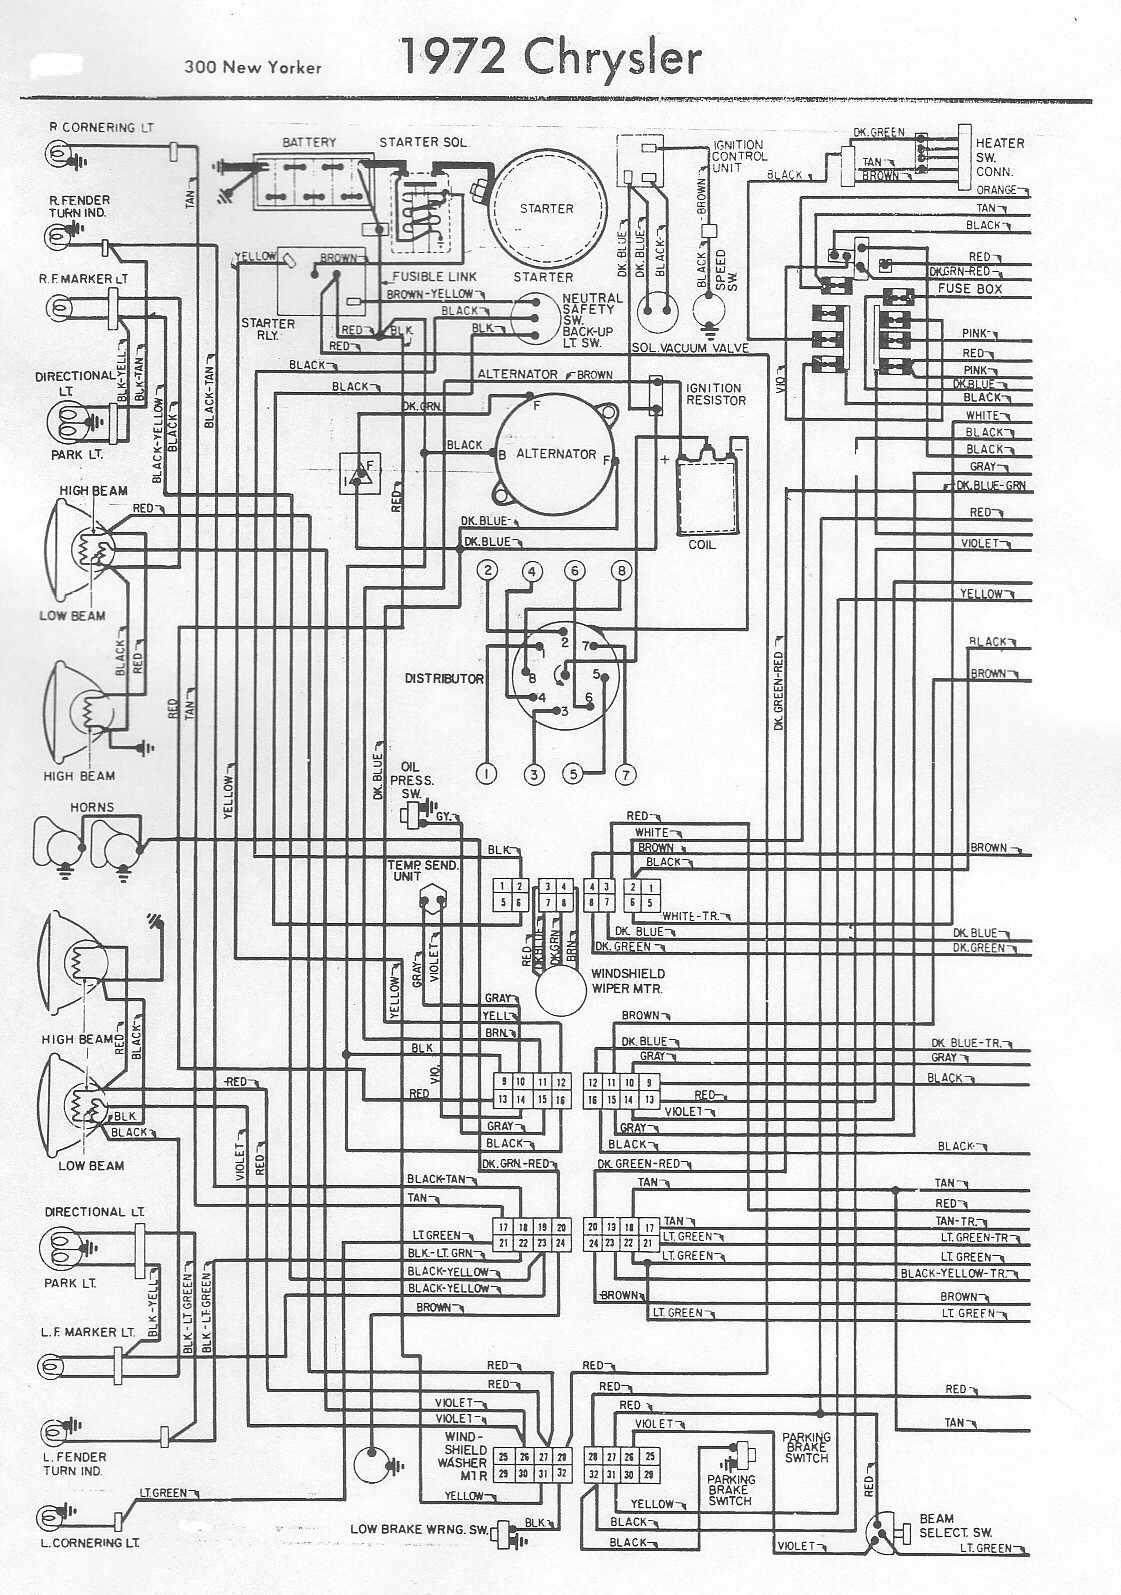 Fuse Box In Chrysler 300 Wiring Library 2007 Klr 650 Diagram Free Download For A 2005 Limited Starting Know On 2008